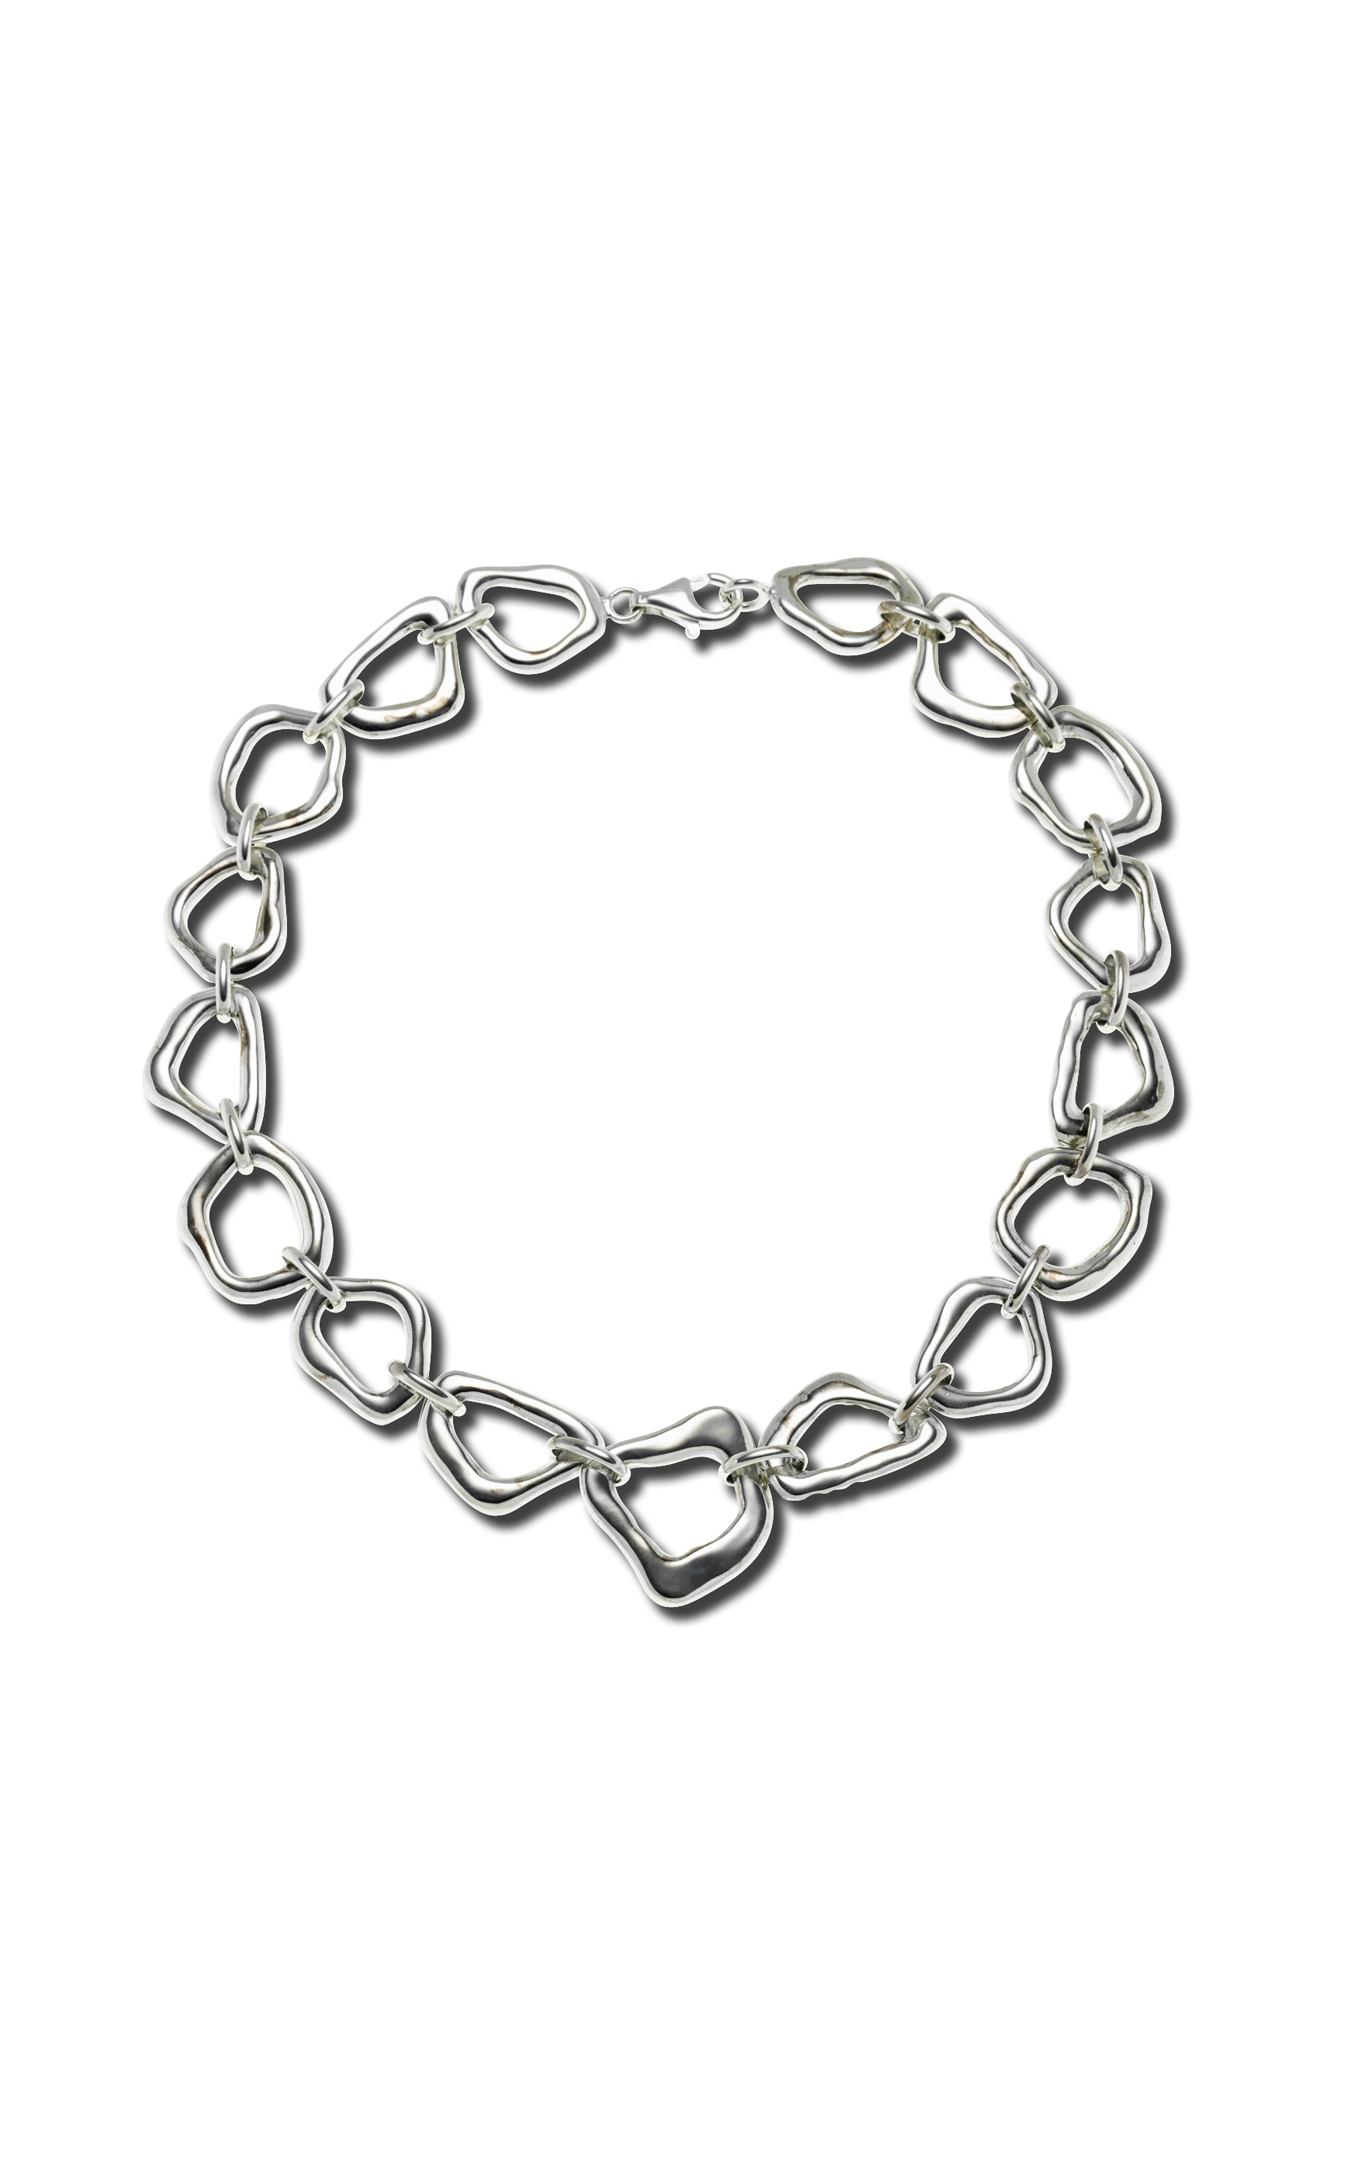 Zina Ripples Necklace A1645-17 product image